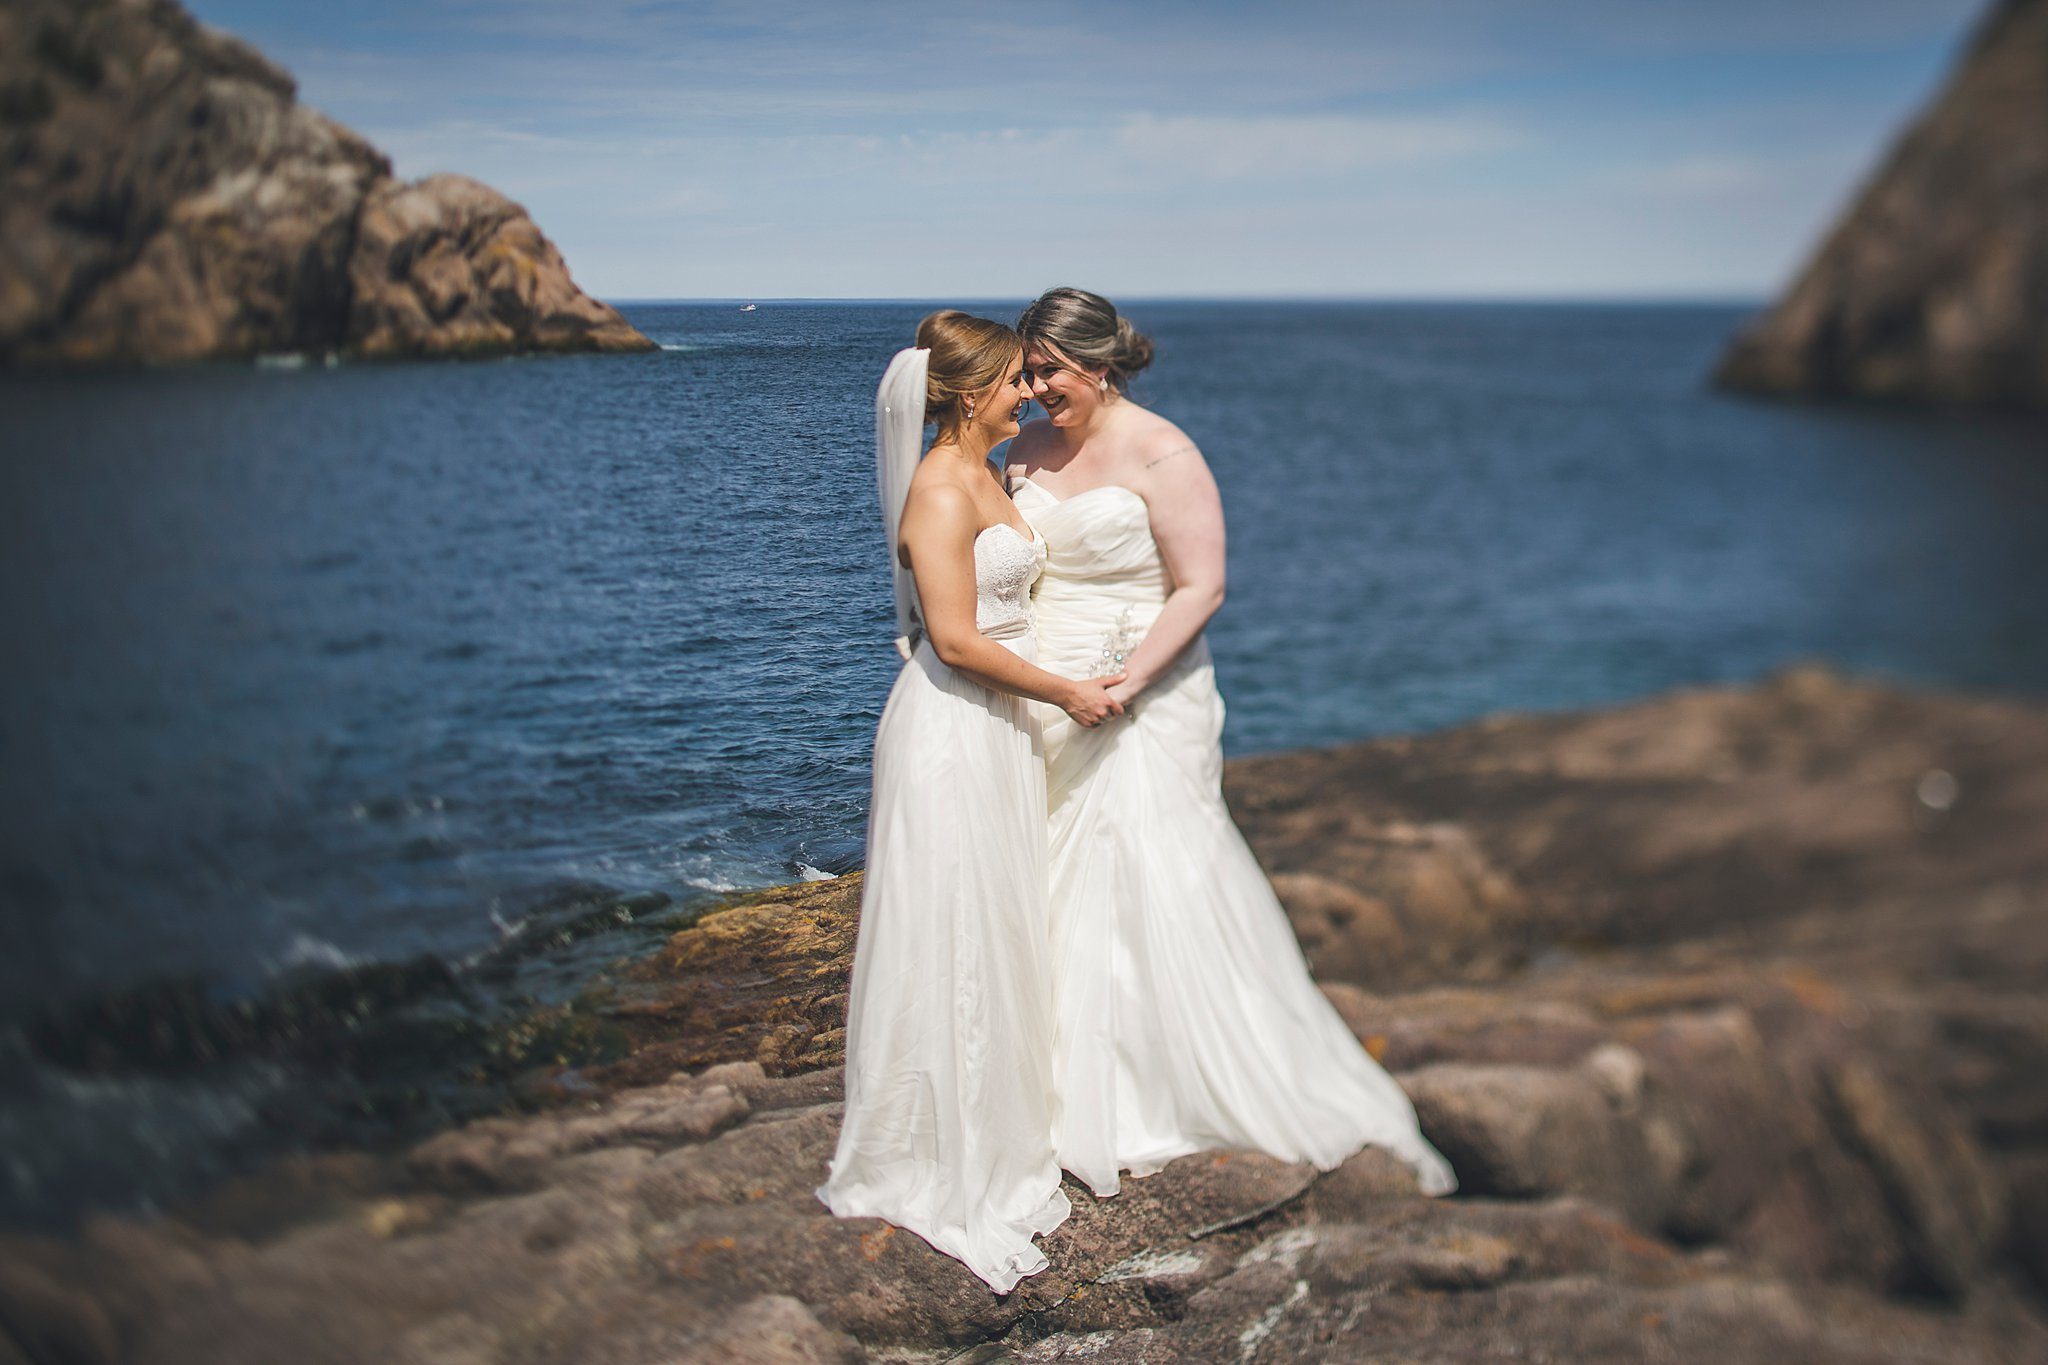 Same sex couple in Quidi Vidi for their wedding photography in St. John's, Newfoundland